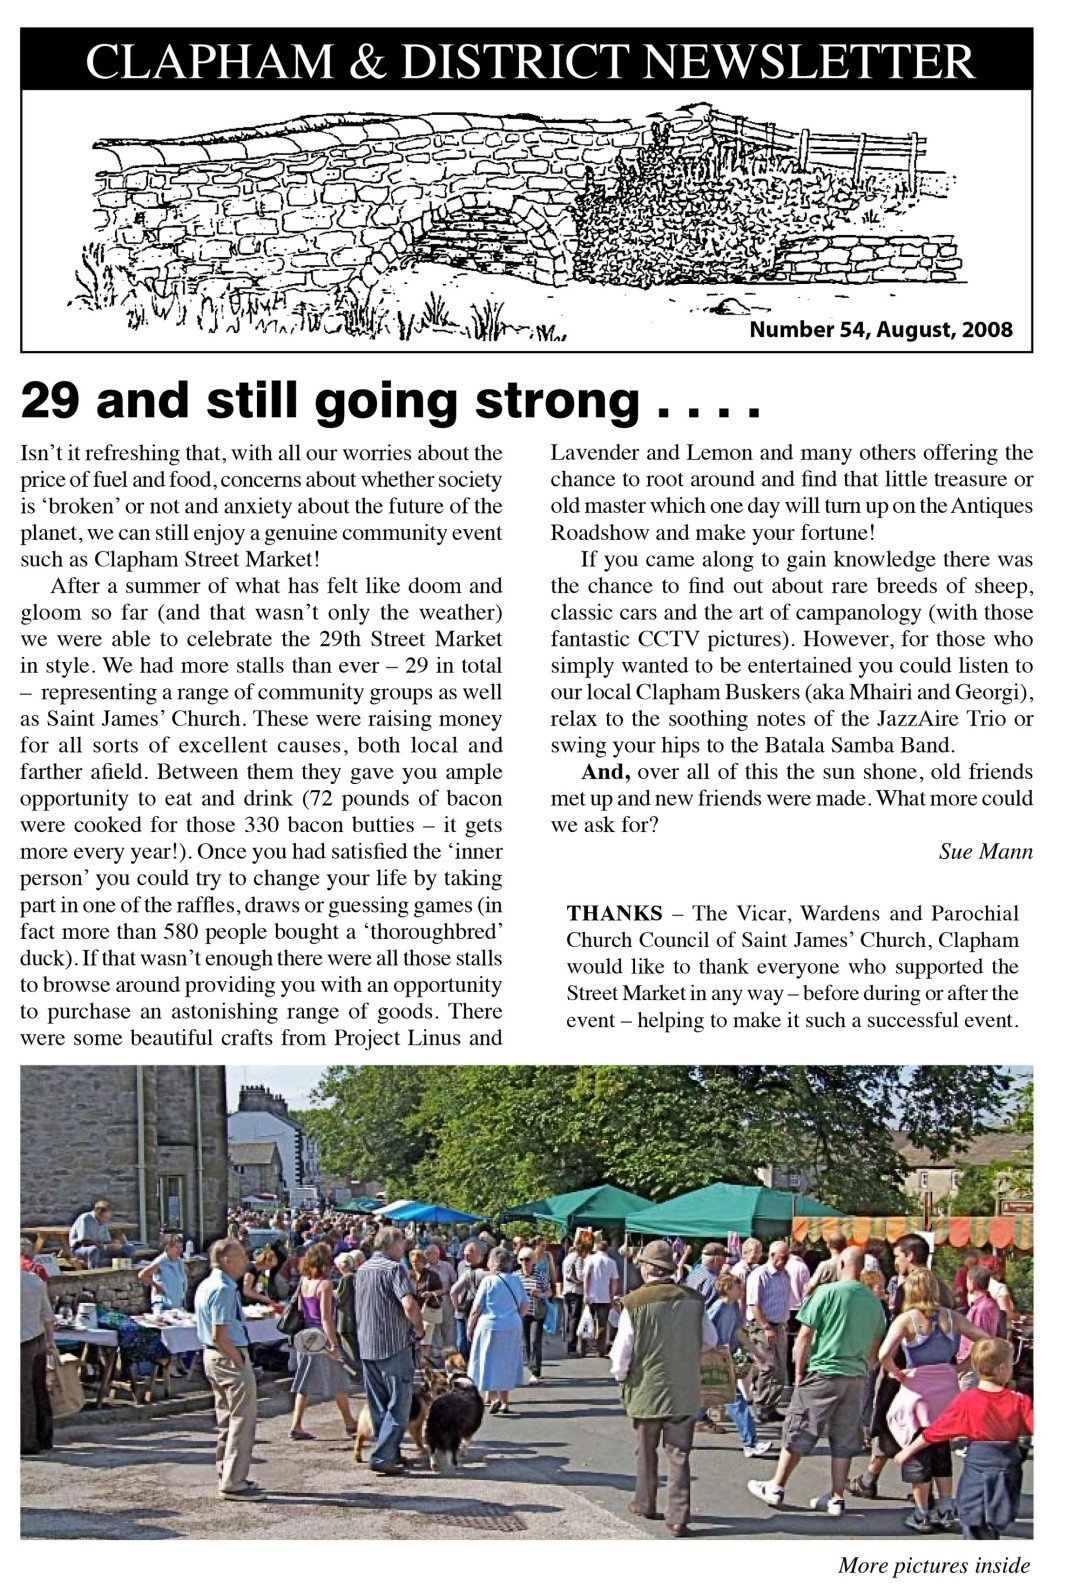 Newsletter_No54_August_2008-1